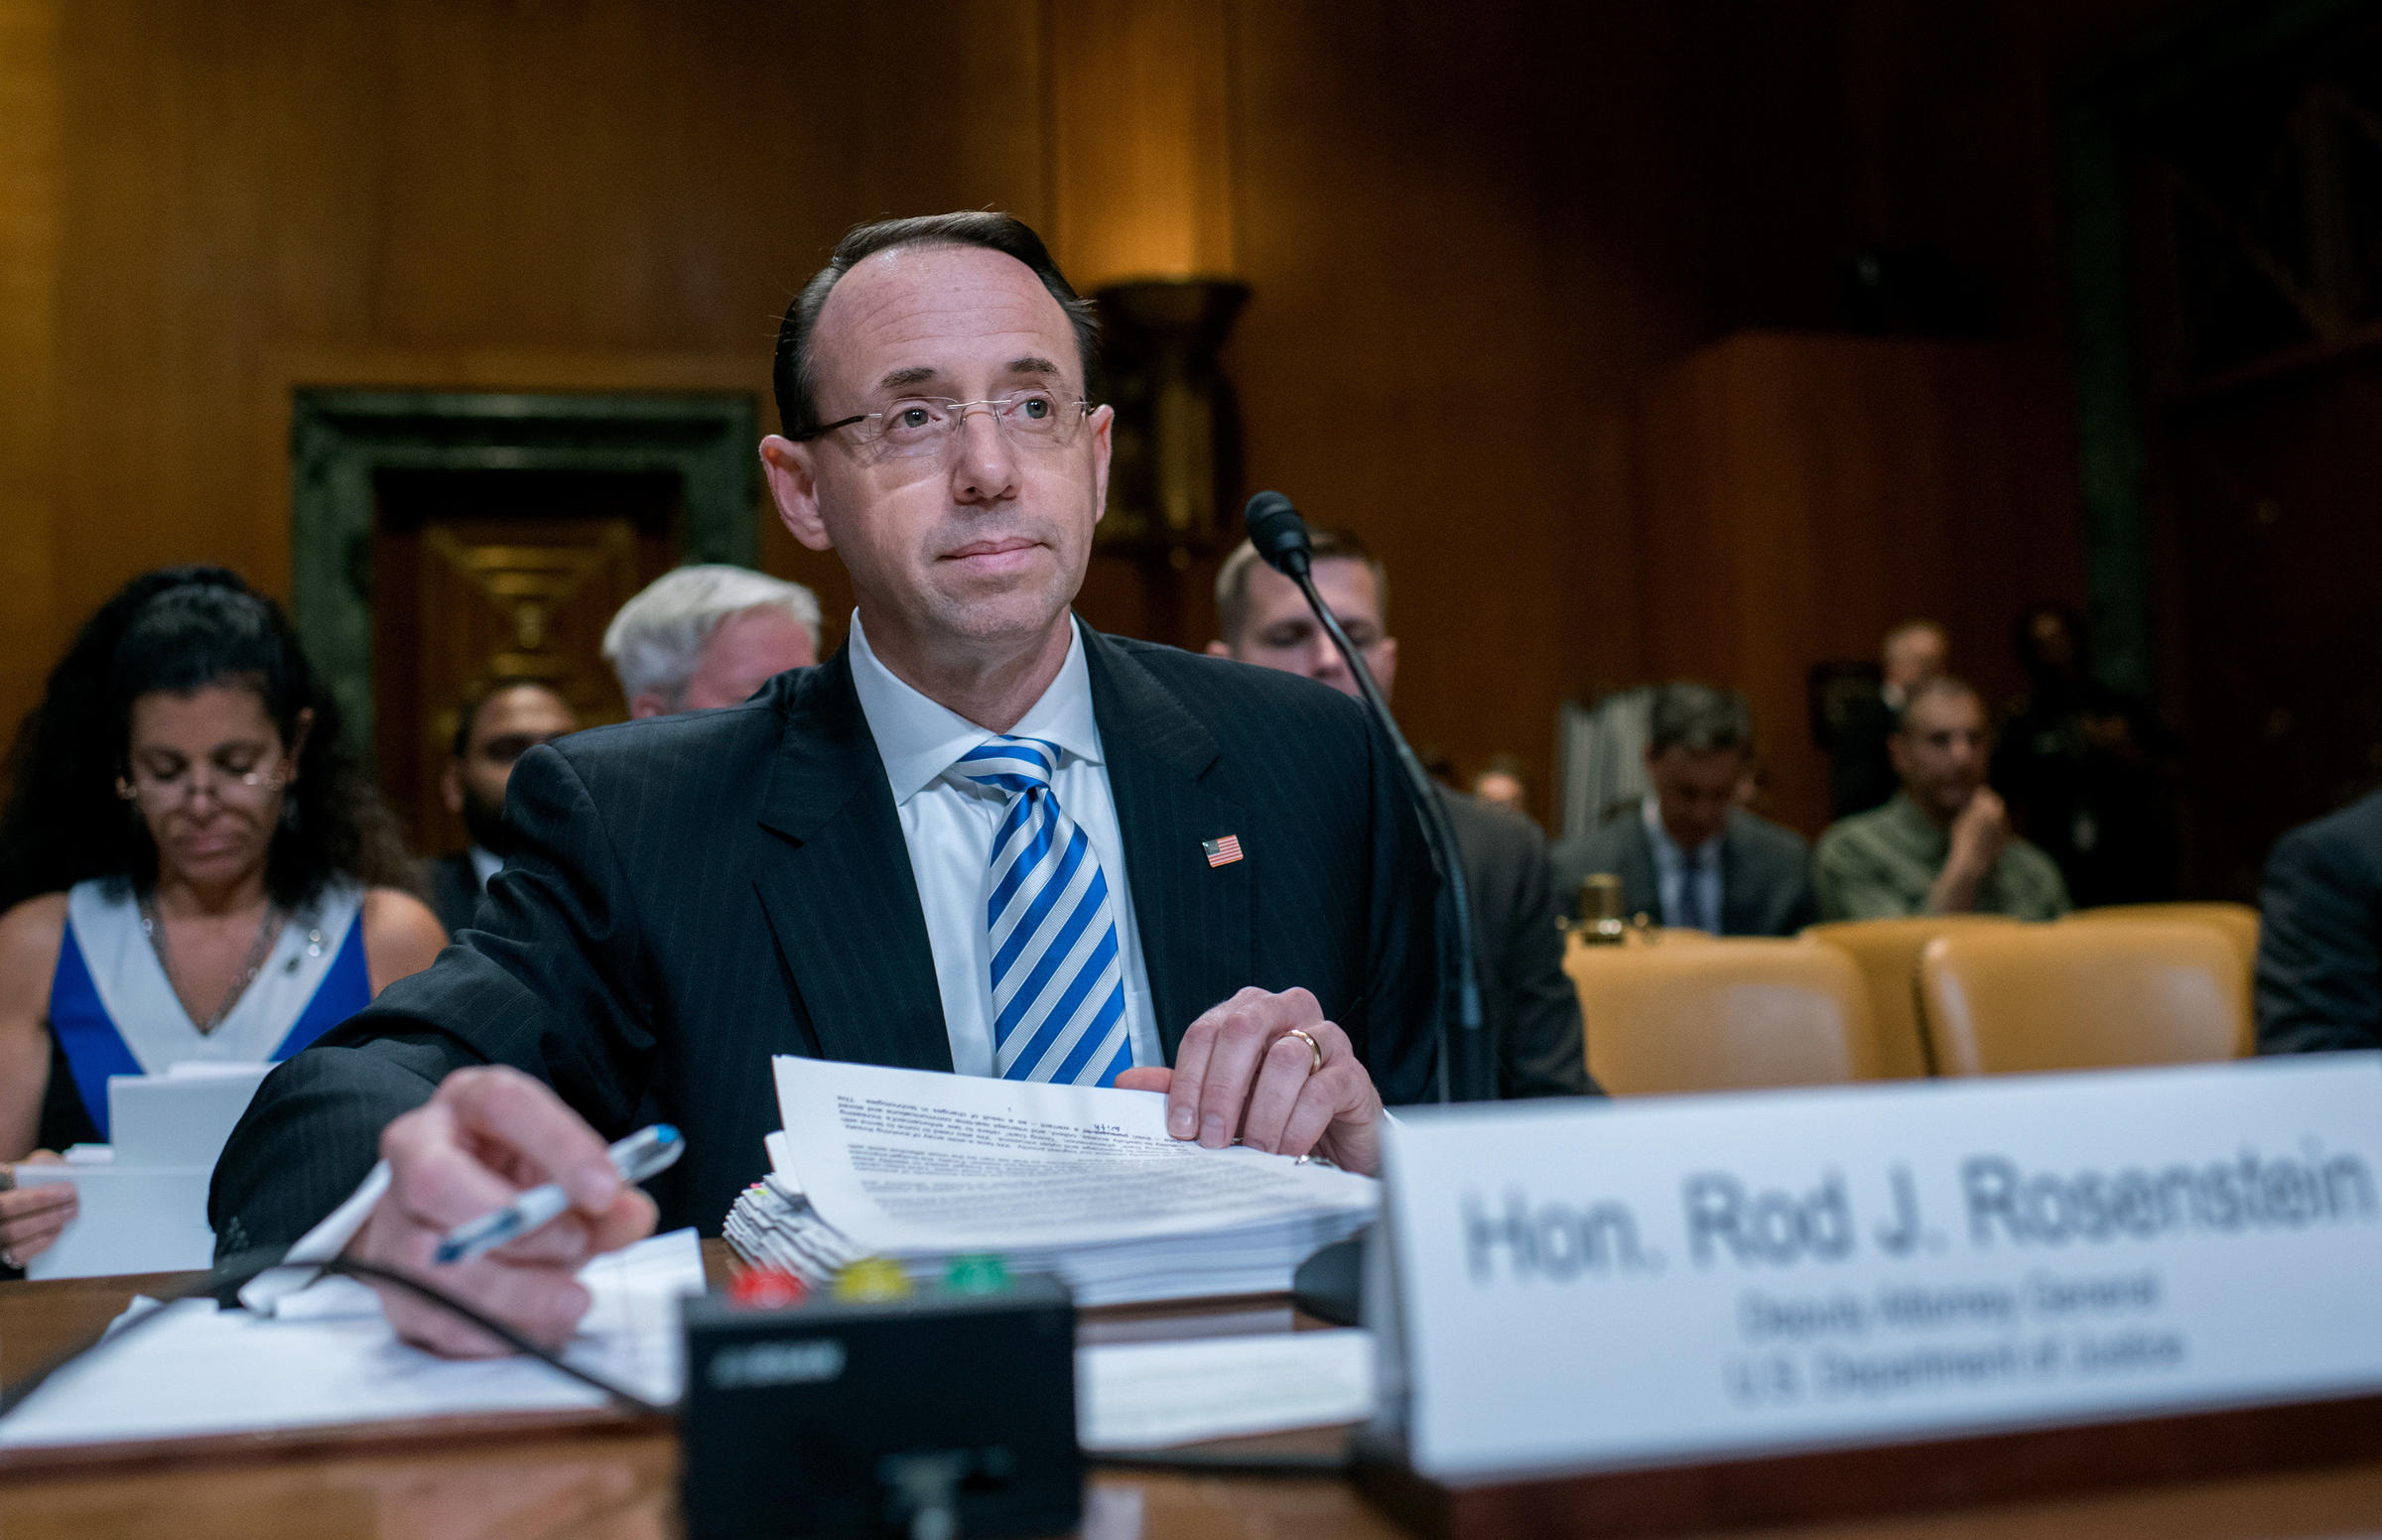 Image result for PHOTOS ROSENSTEIN MUELLER